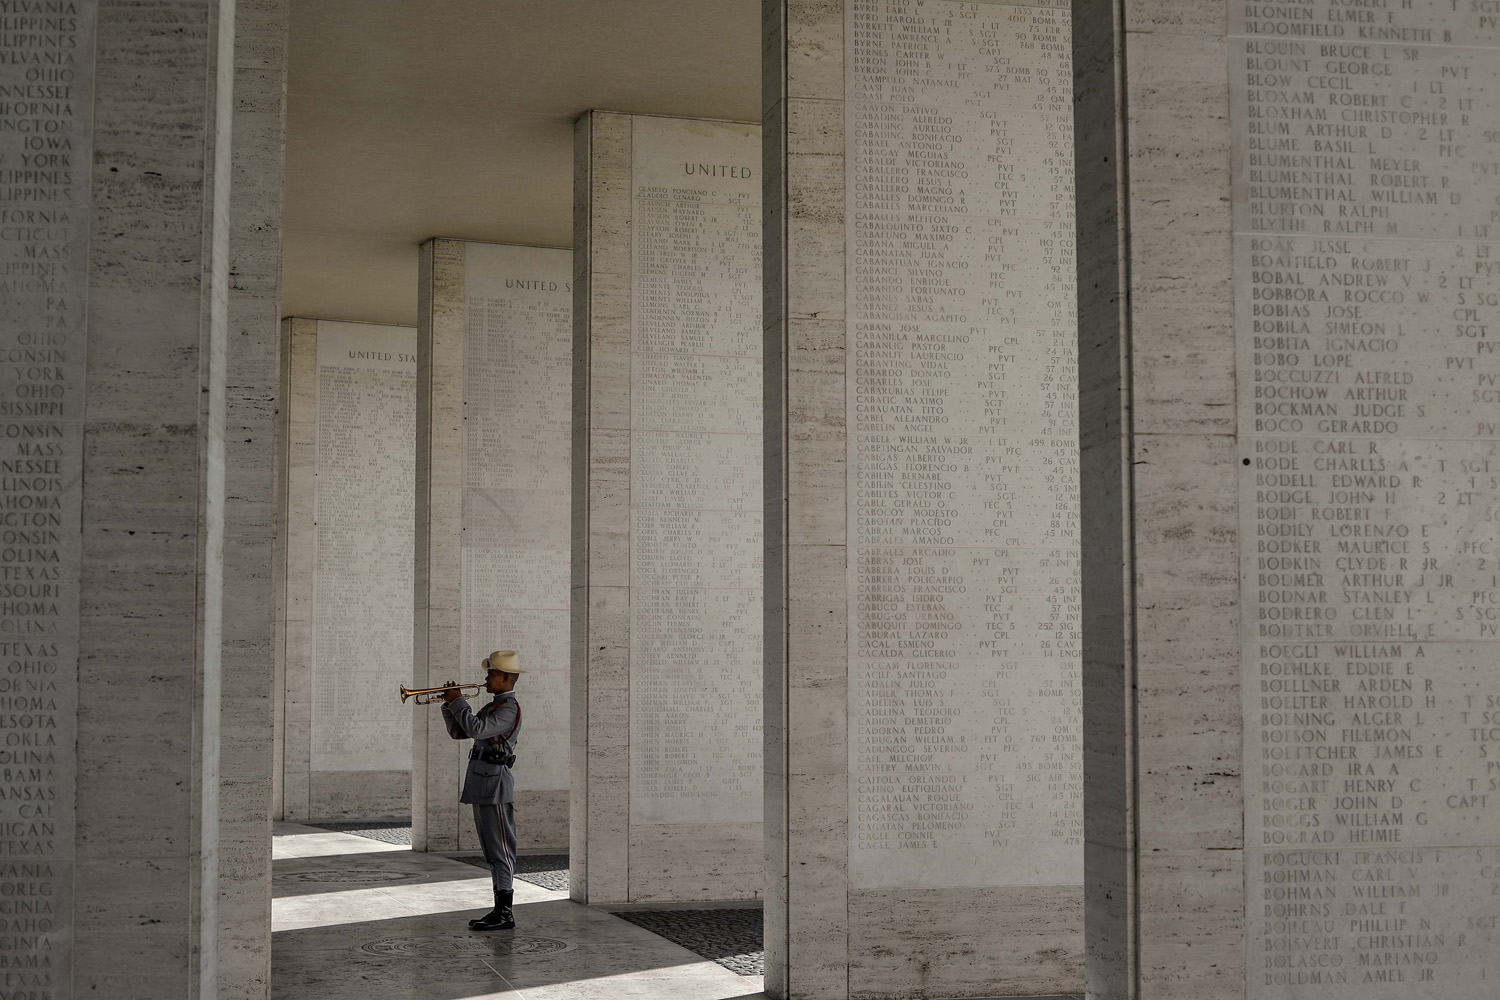 25 May 2014,  A Philippine soldier plays his bugle along the halls displaying the engraved names of soldiers who fell during World War II at a service to mark the US Memorial Day at the Manila American Cemetery in Fort Bonifacio in Taguig, east of Manila, Philippines.